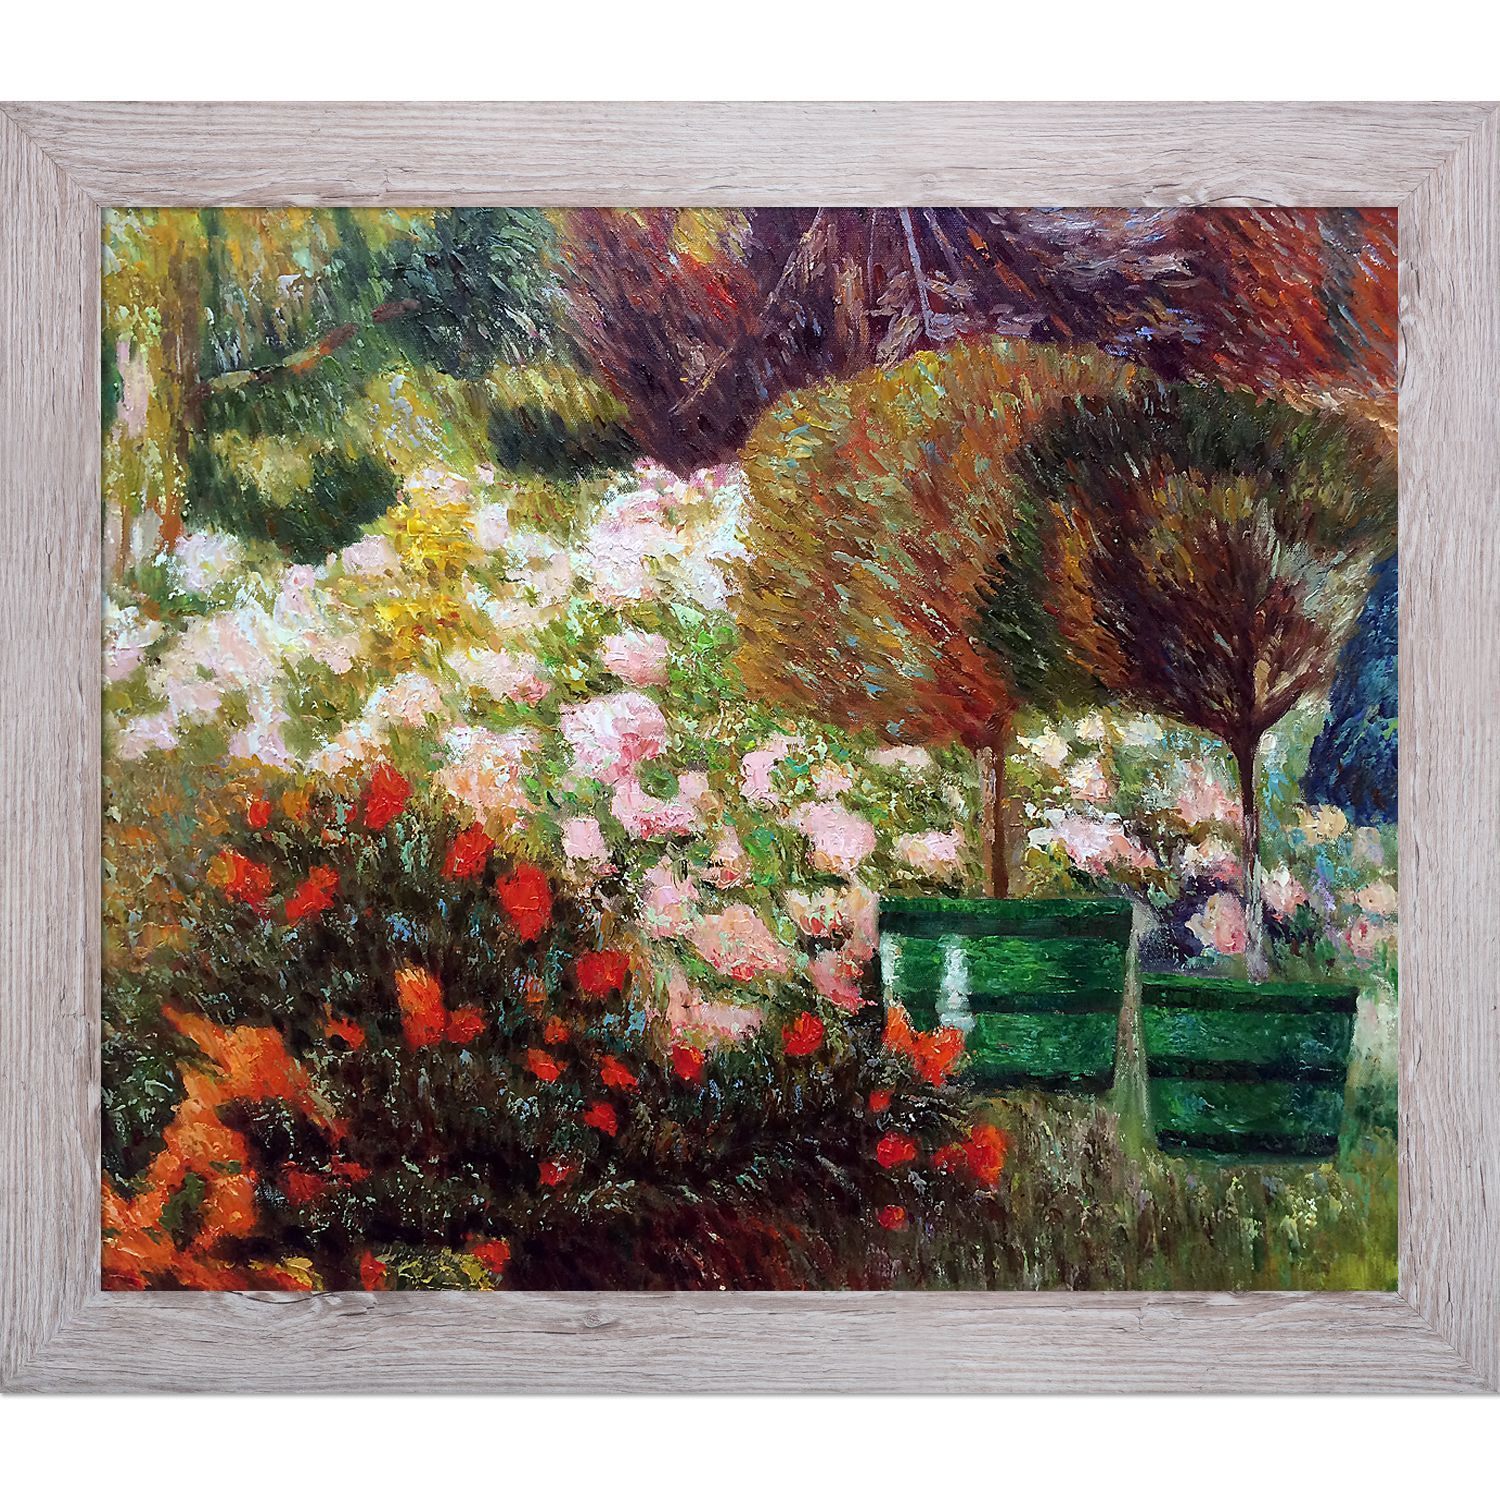 Emile Claus 'A Corner of My Garden 1901' Hand Painted Framed Art